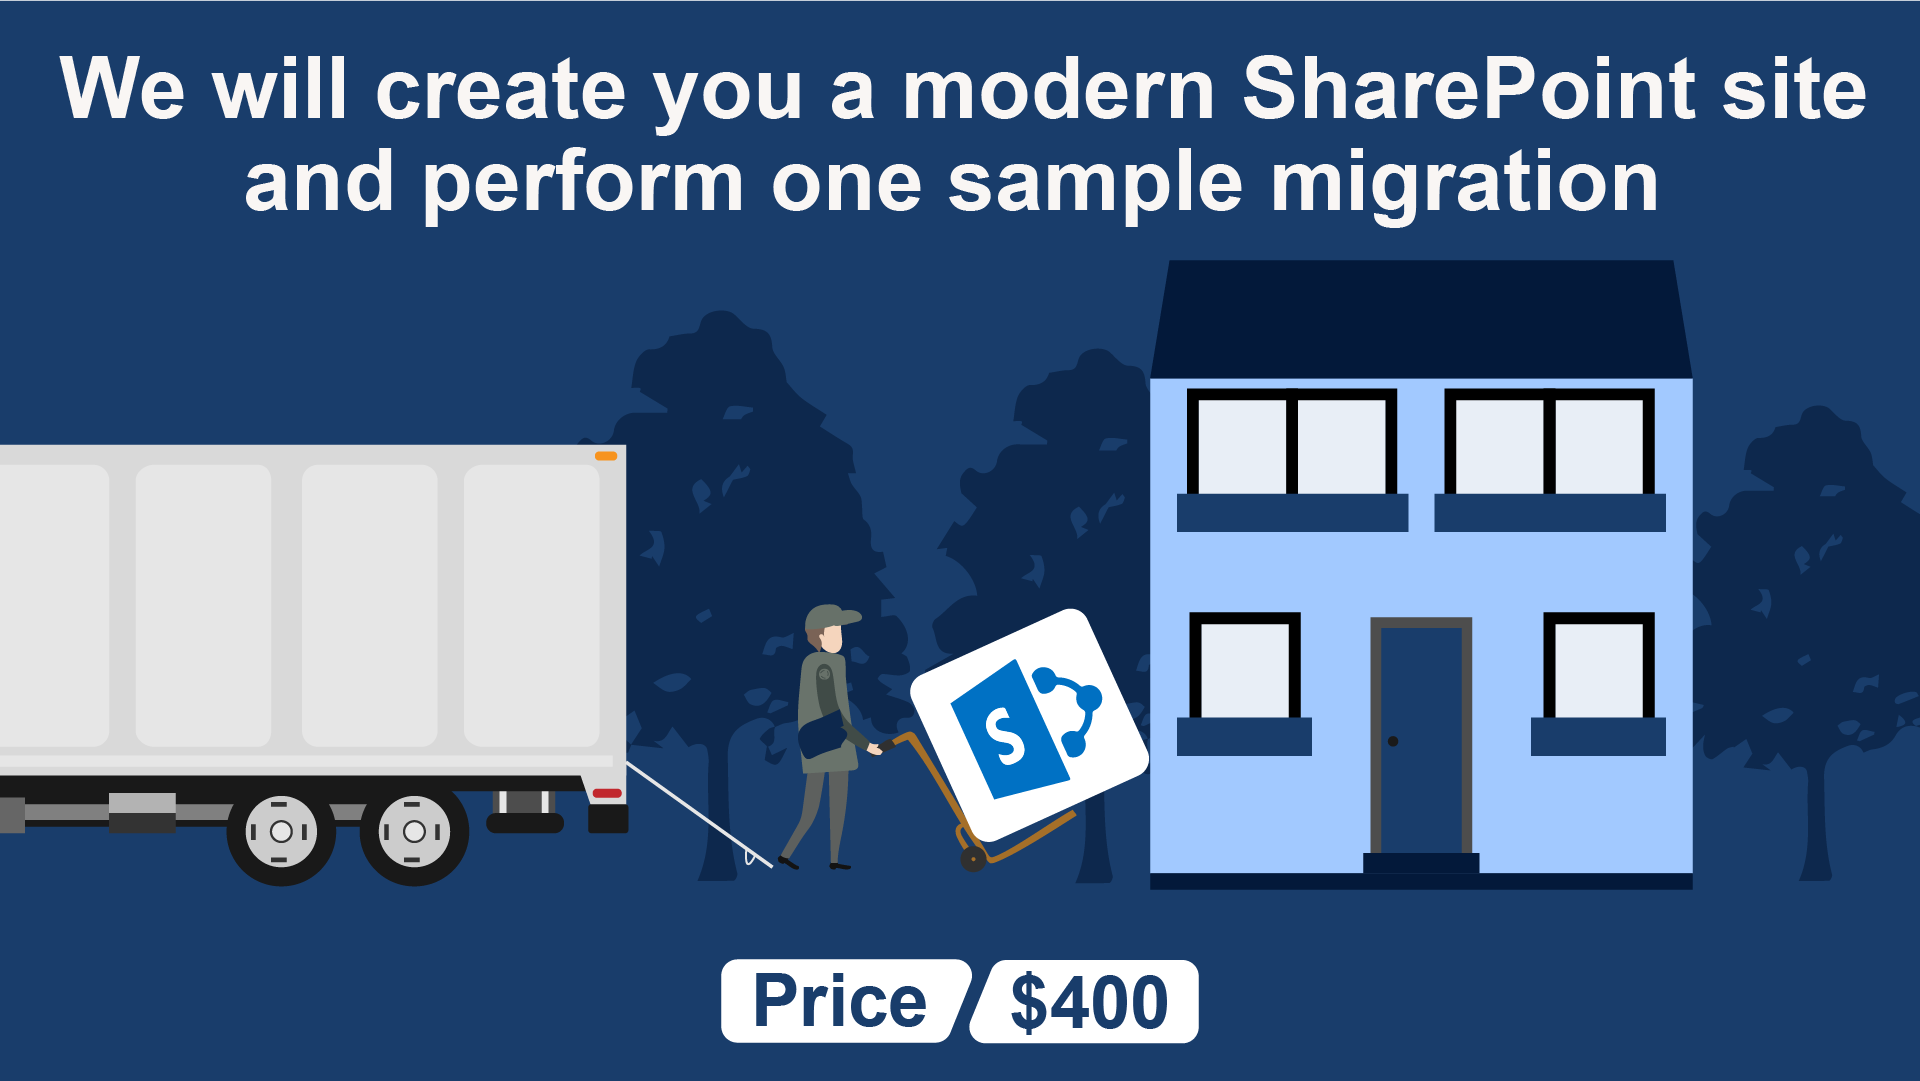 We will create you a modern SharePoint site and perform one sample migration